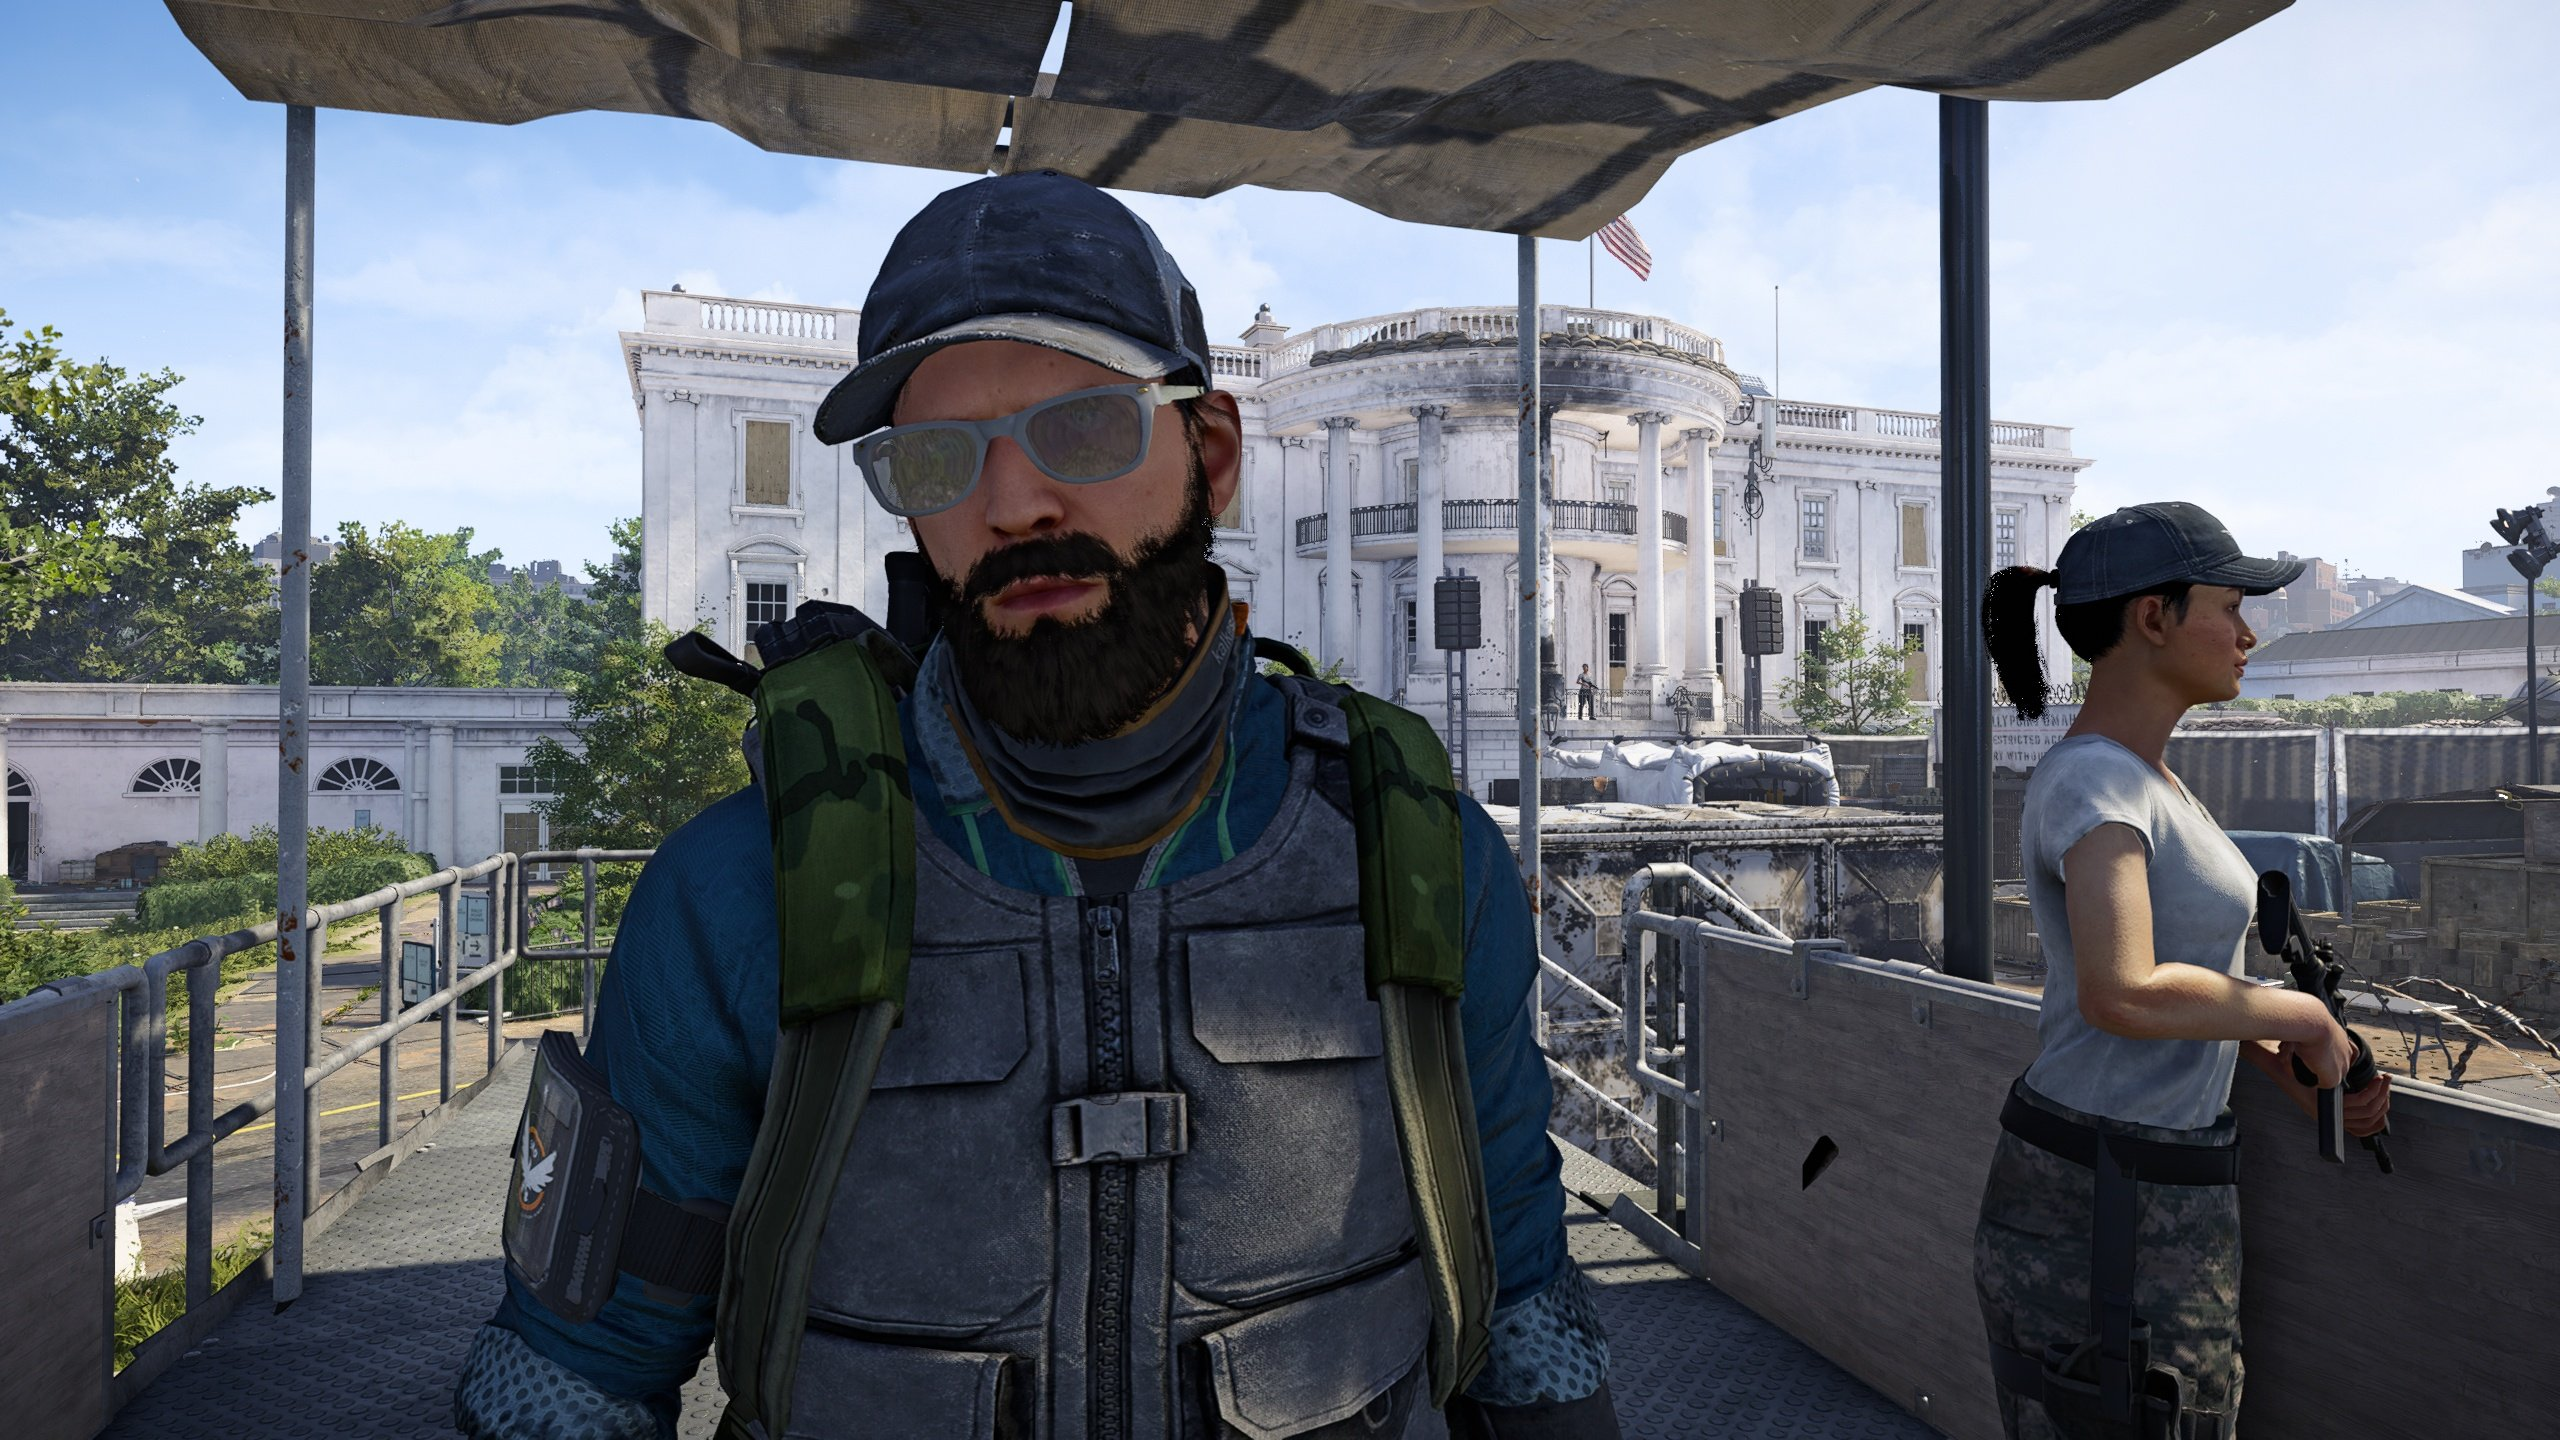 How to change clothes & unlock clothing in The Division 2 | Shacknews